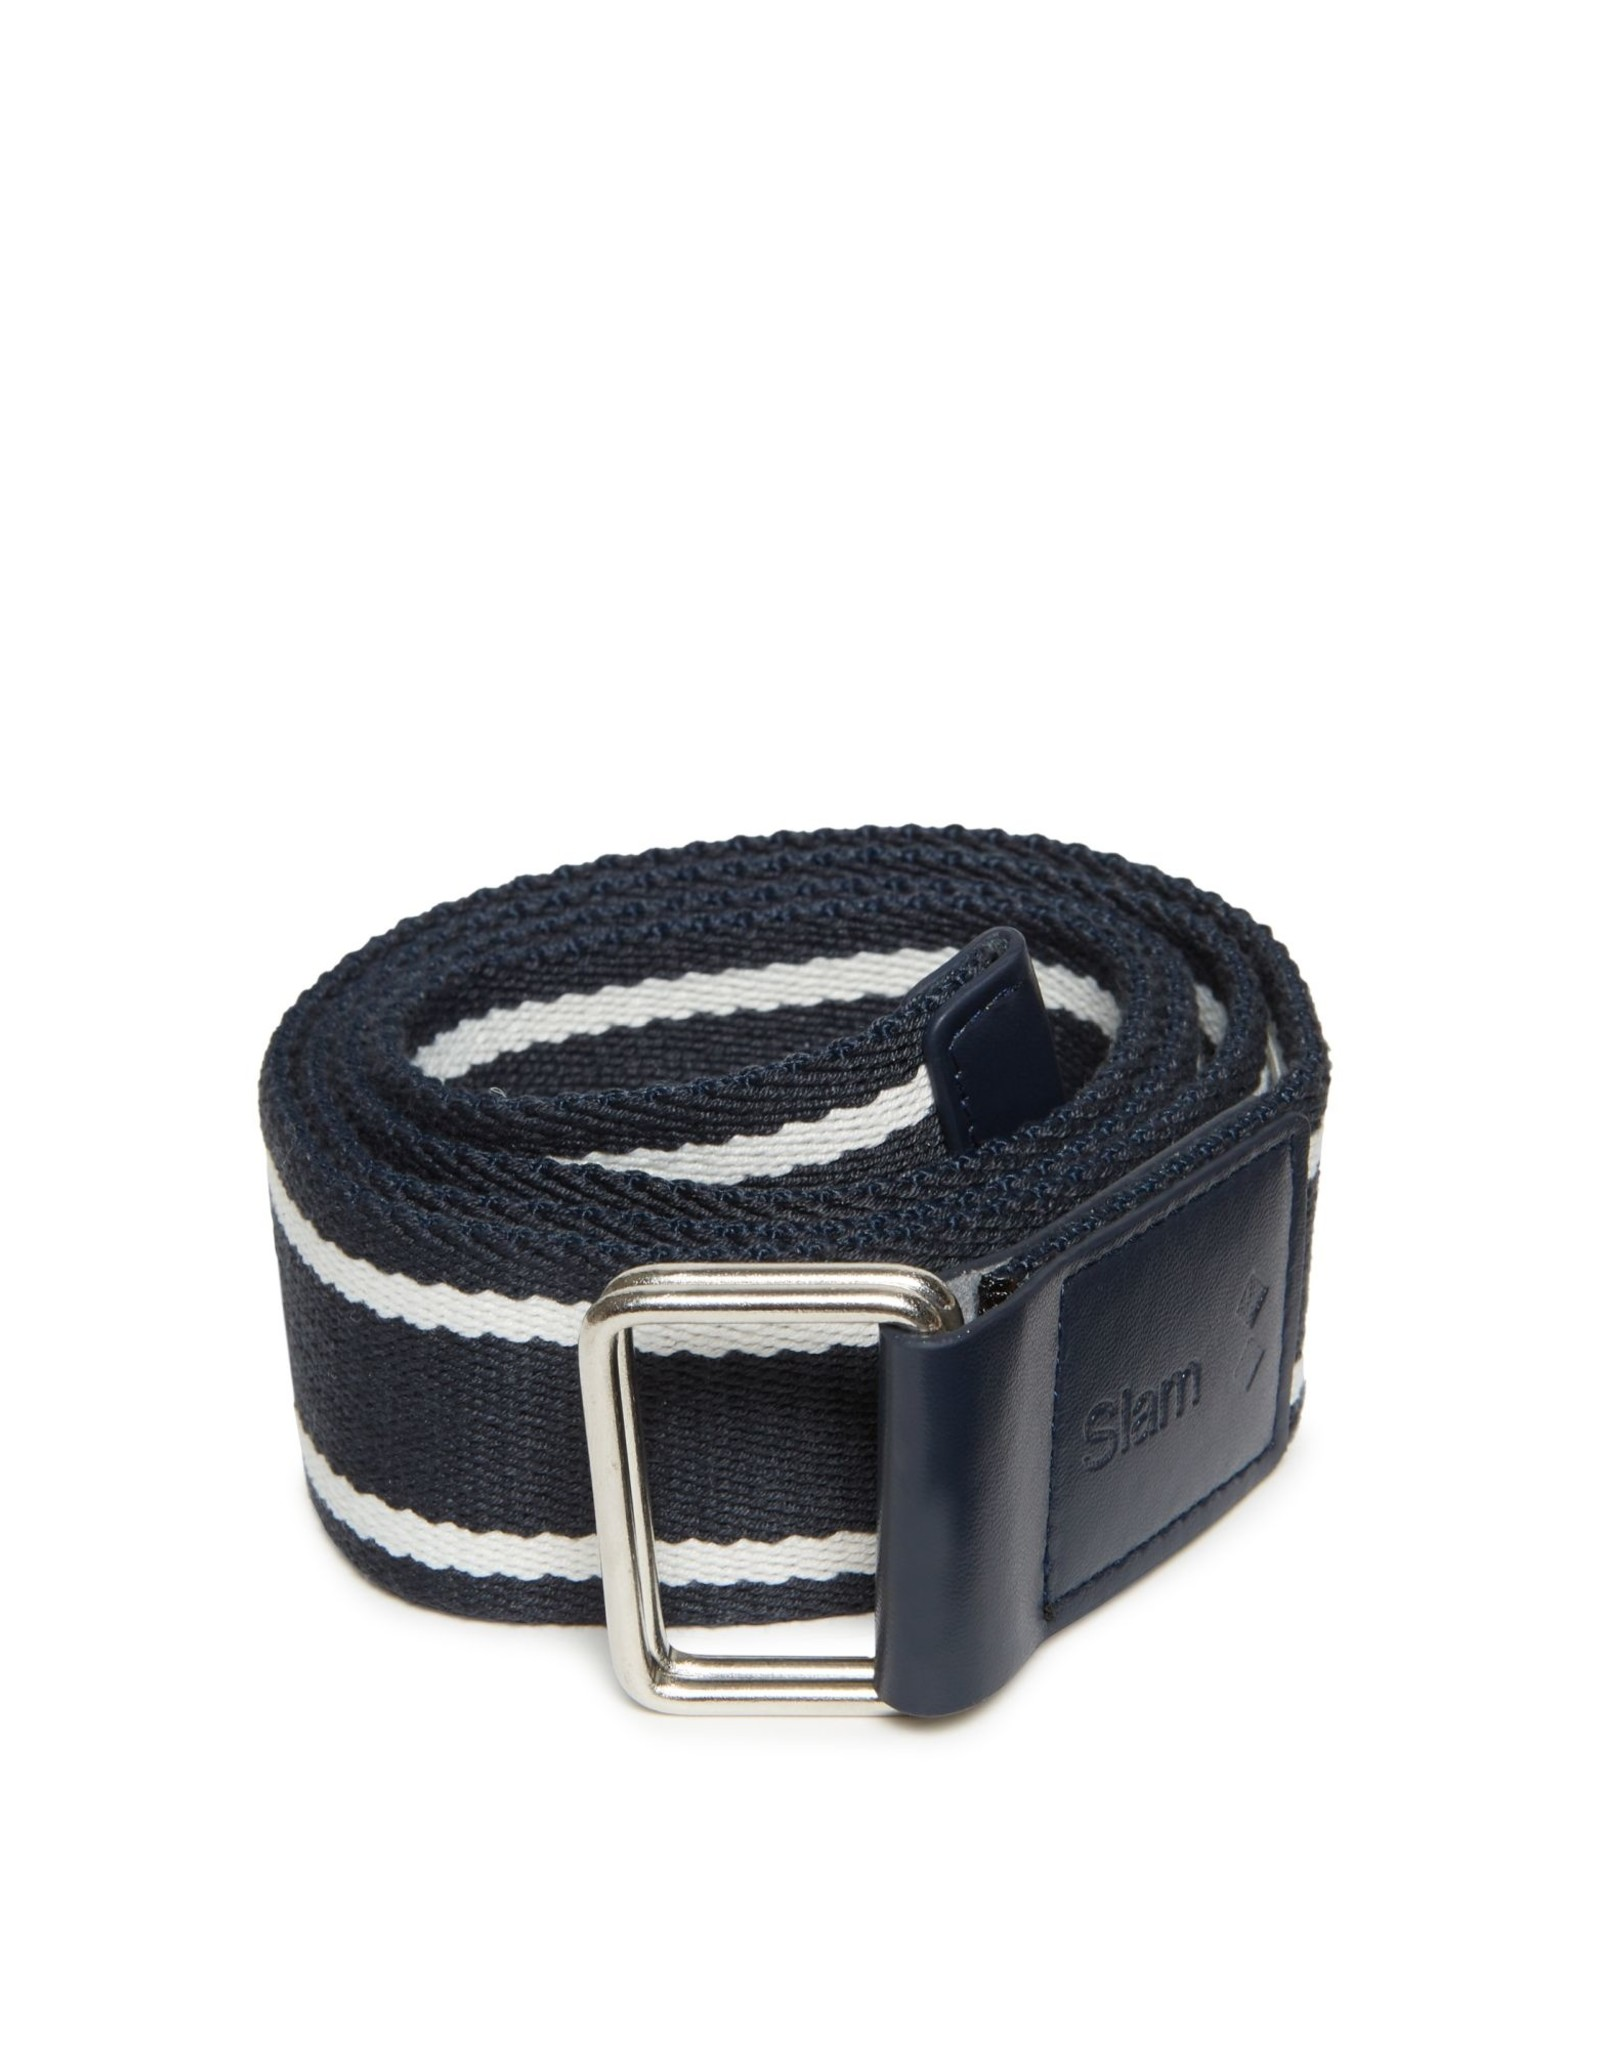 Slam Belt mayd - Navy/cream (870)